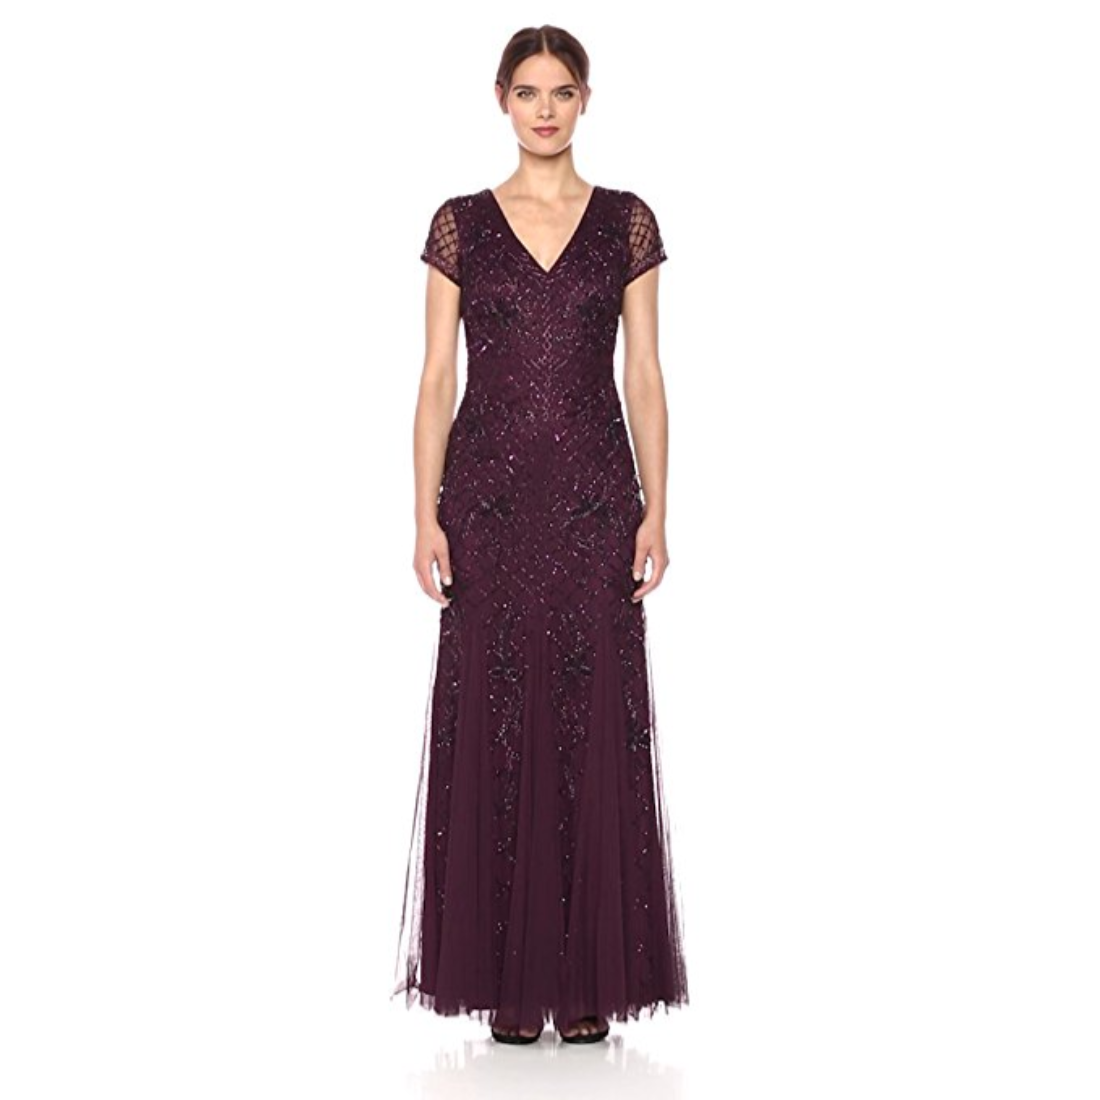 Adrianna Papell Short Sleeve Beaded Gown With Chiffon Godet Skirt DP ...